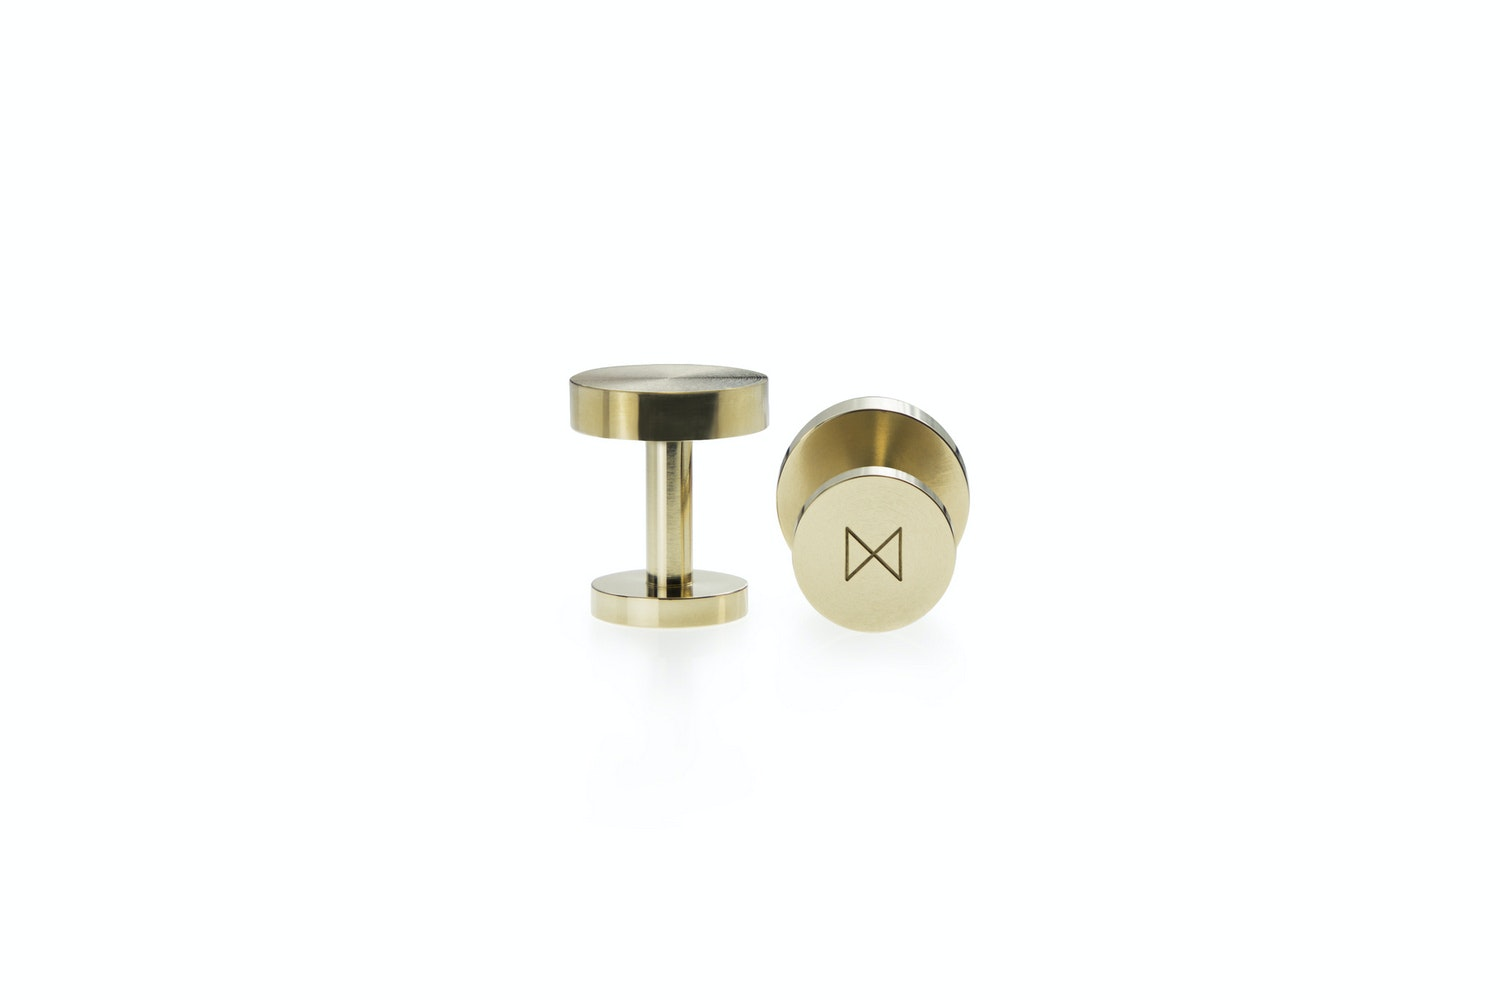 Cufflinks - Machined Brass by Alice Made This for Minimalux